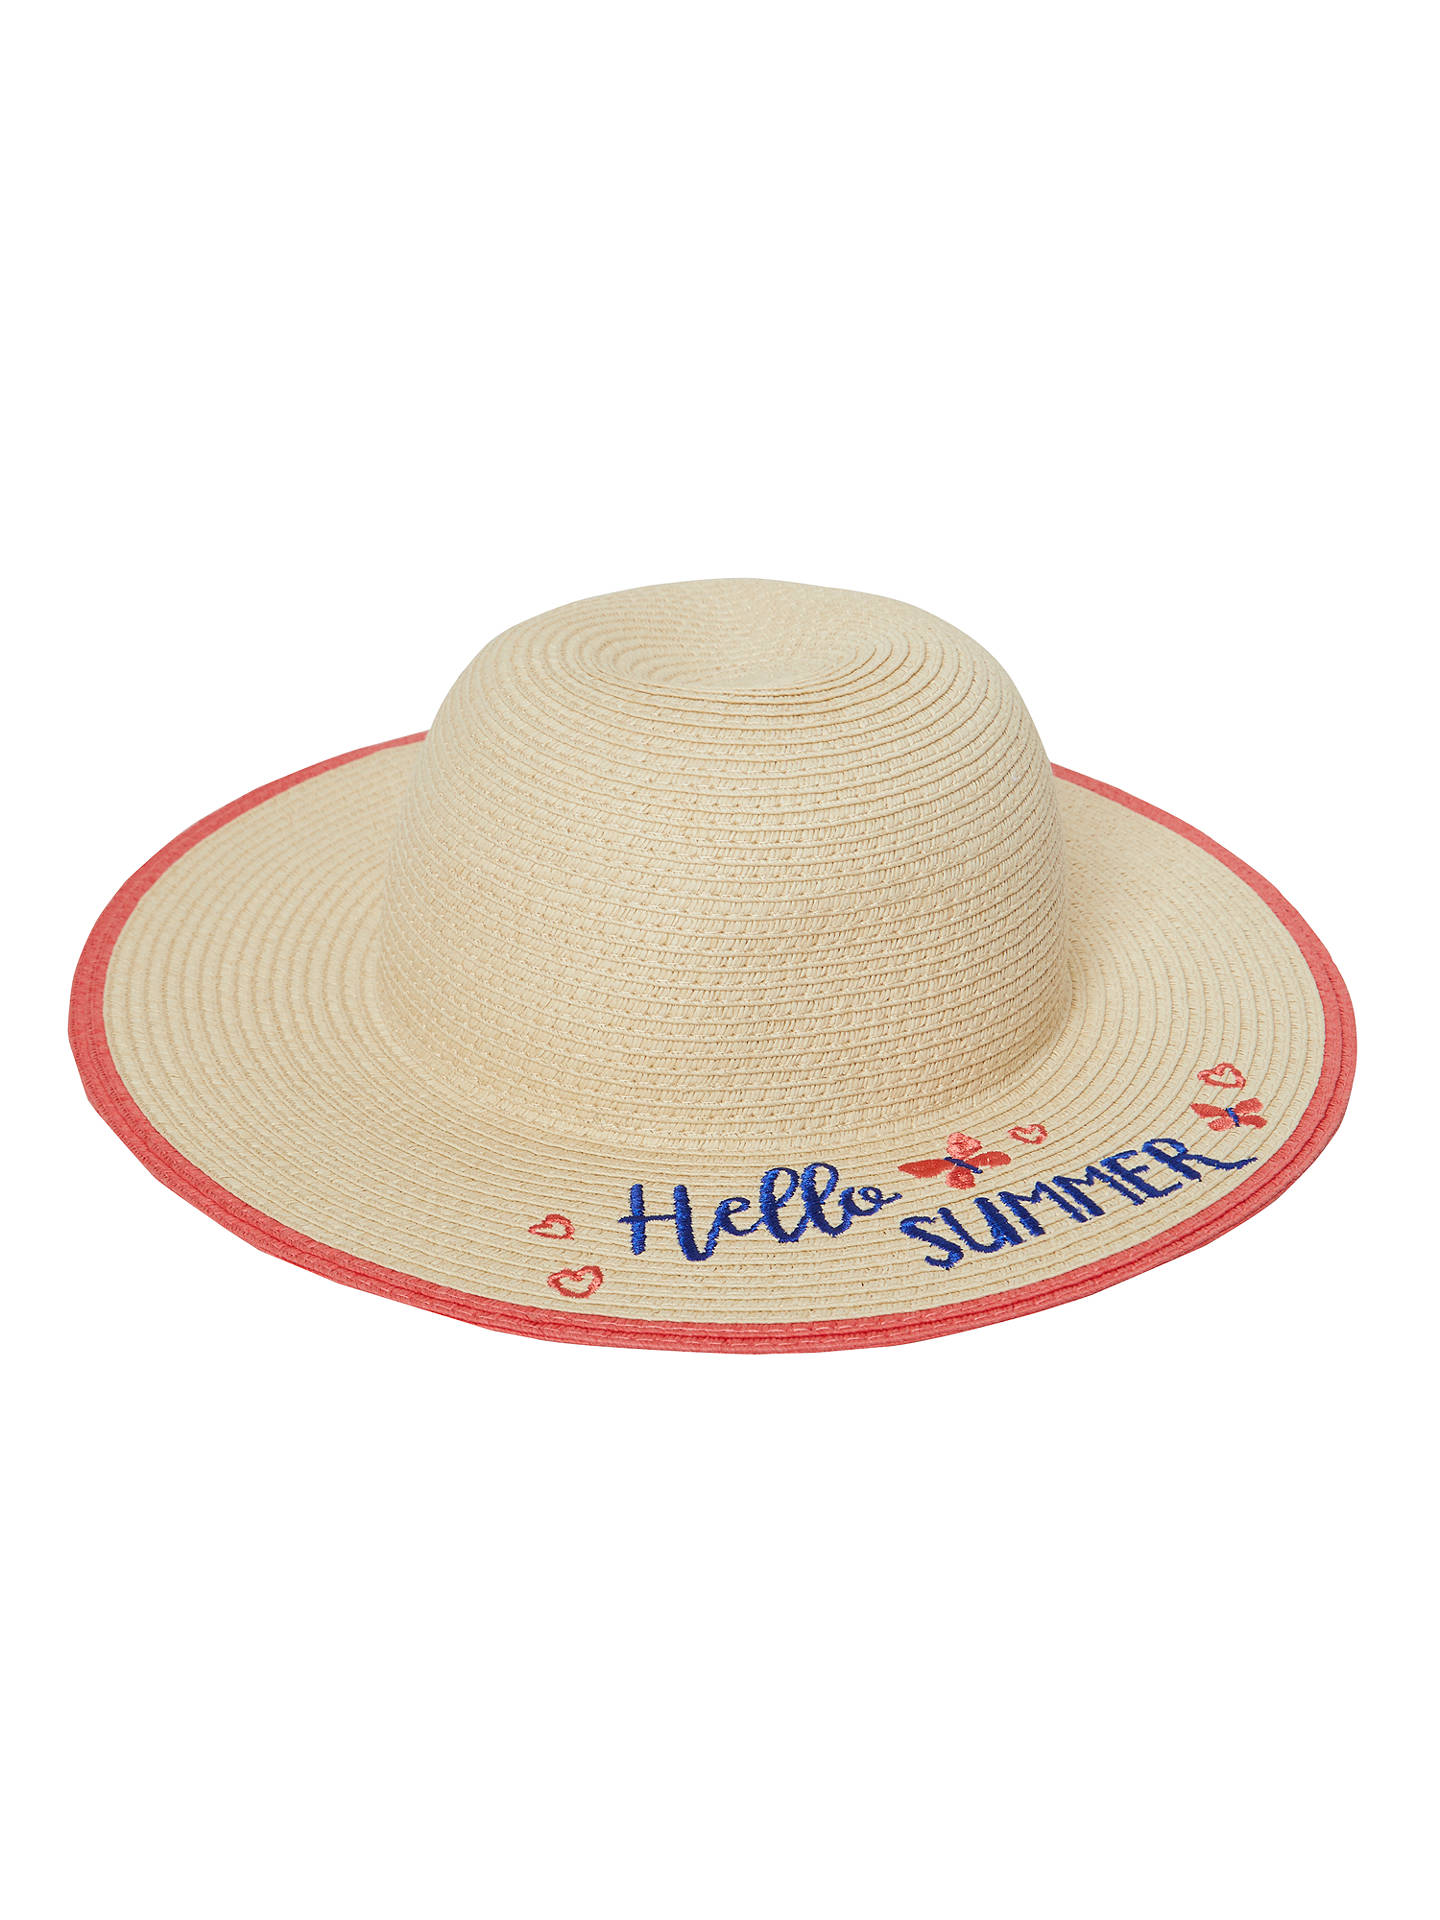 BuyJohn Lewis & Partners Children's Hello Summer Straw Hat, Natural, M Online at johnlewis.com